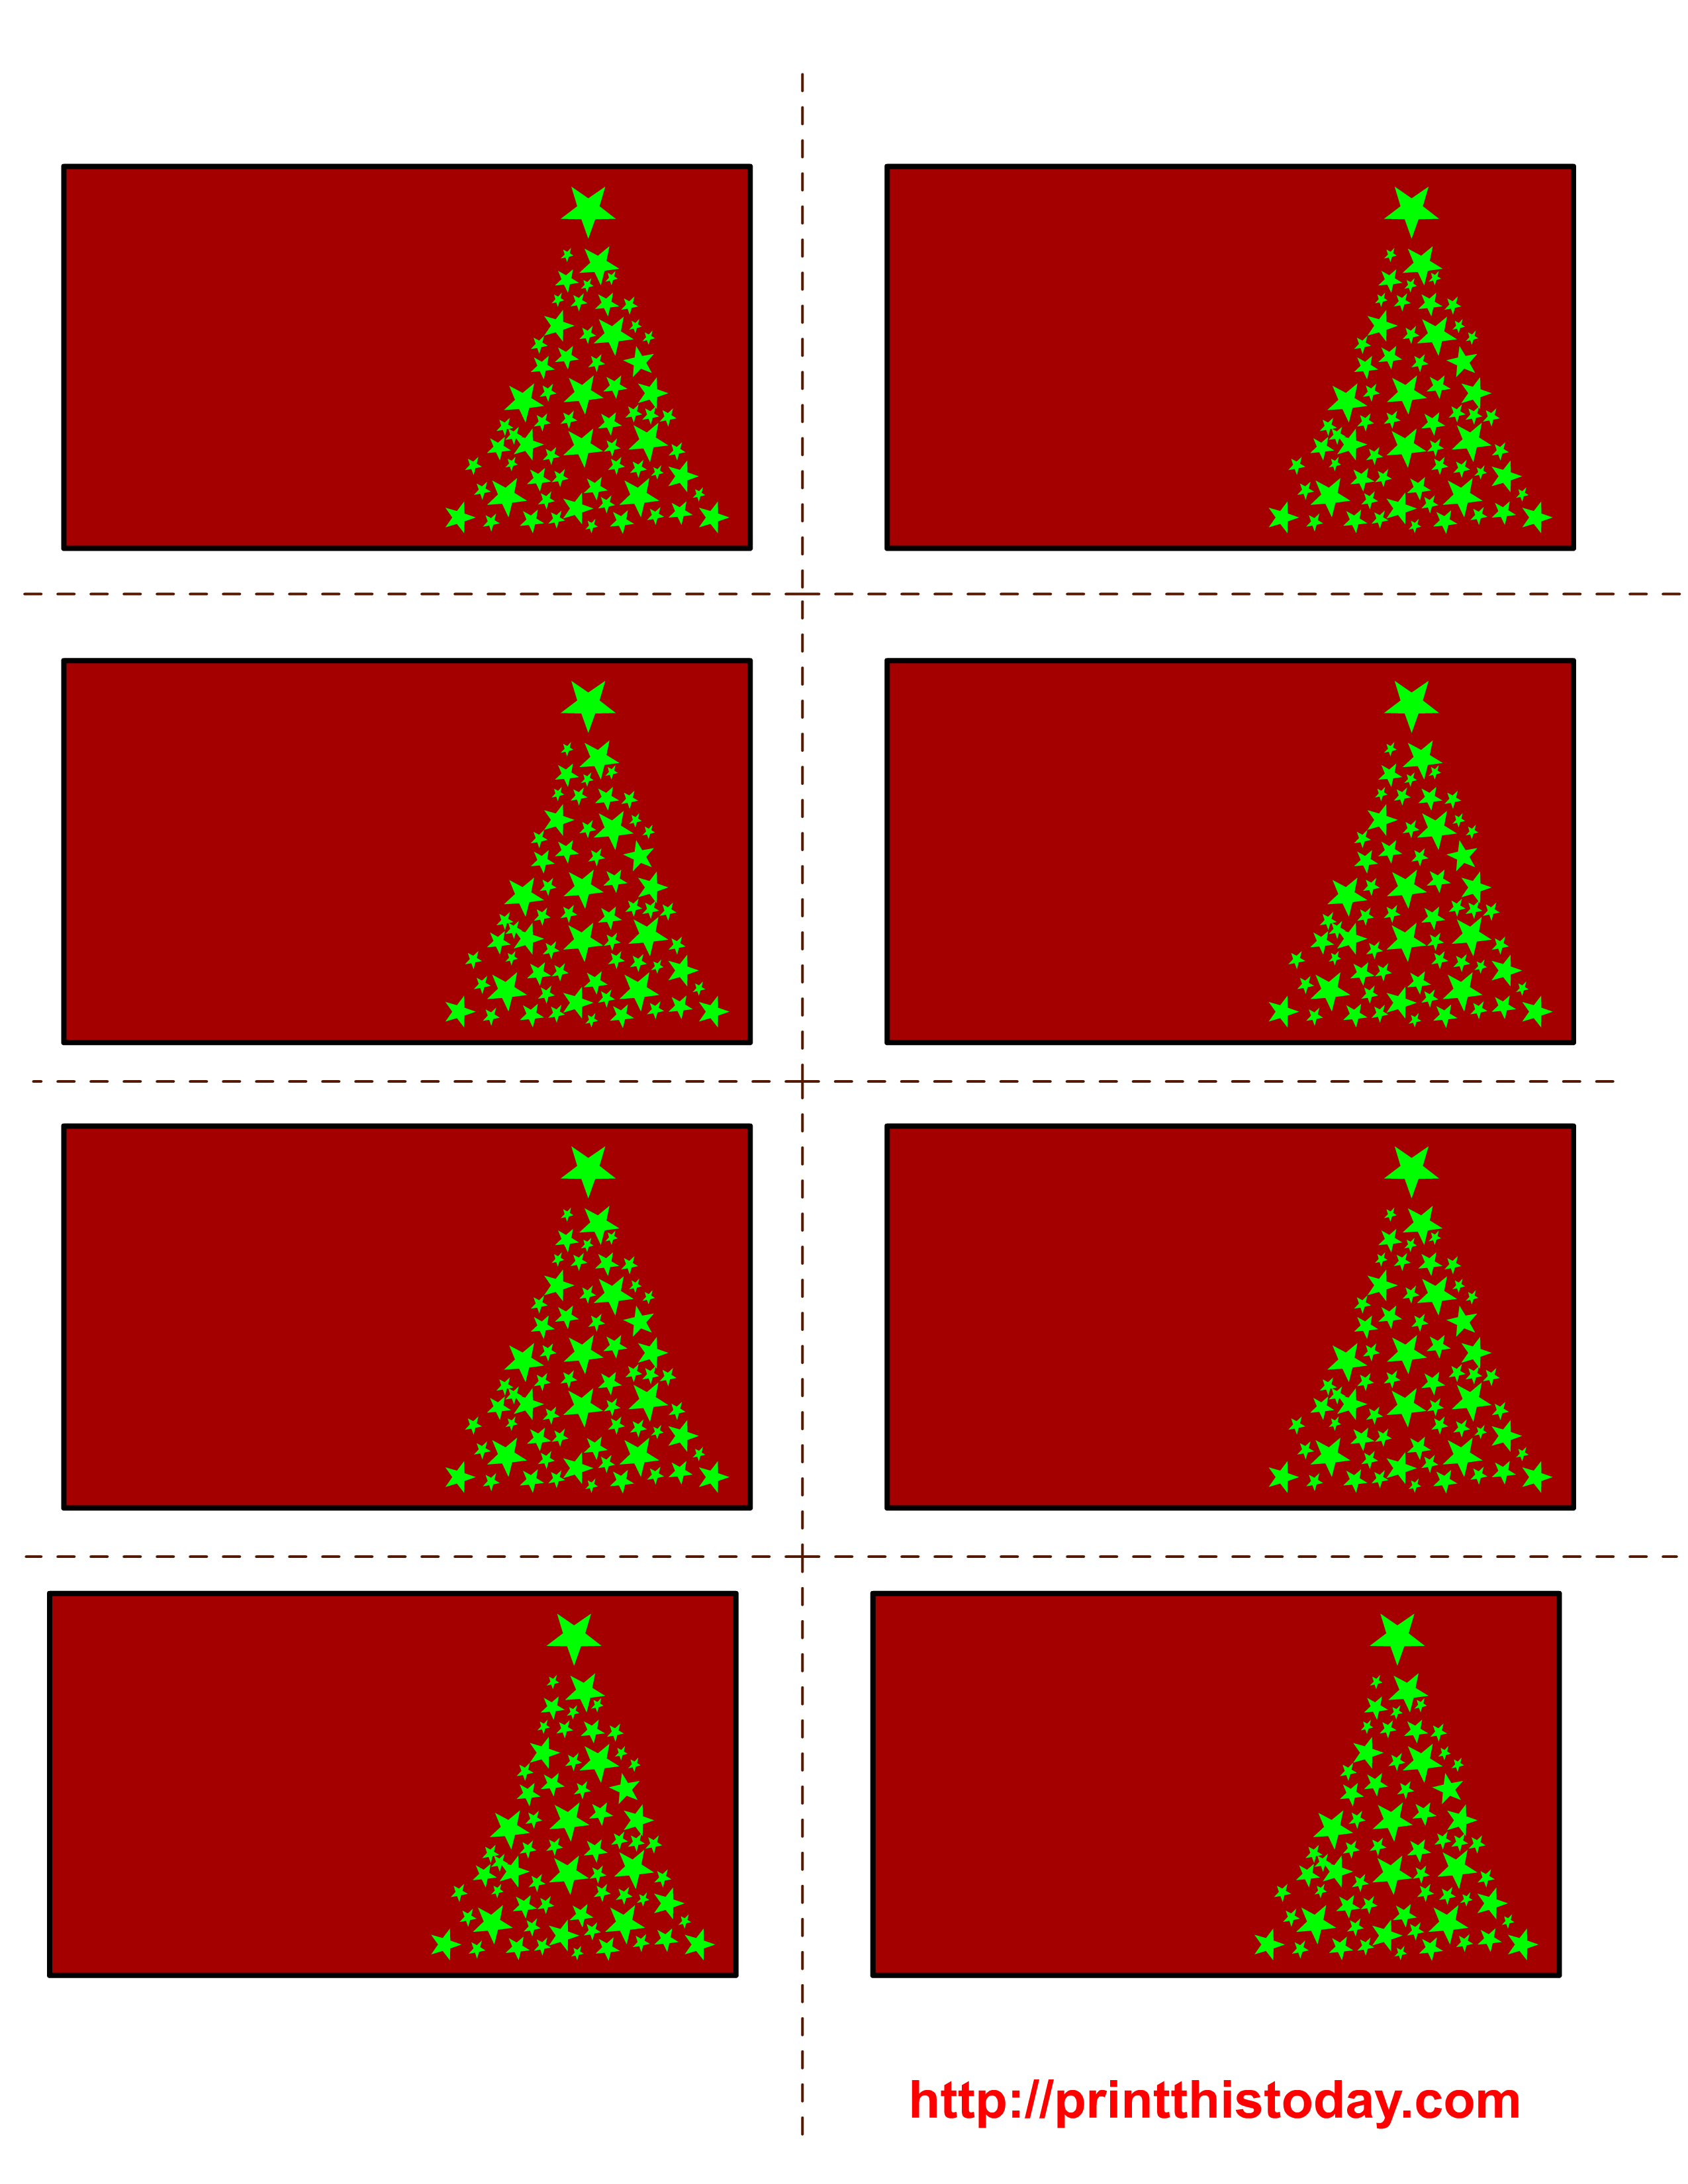 free online label templates - free printable christmas labels with trees